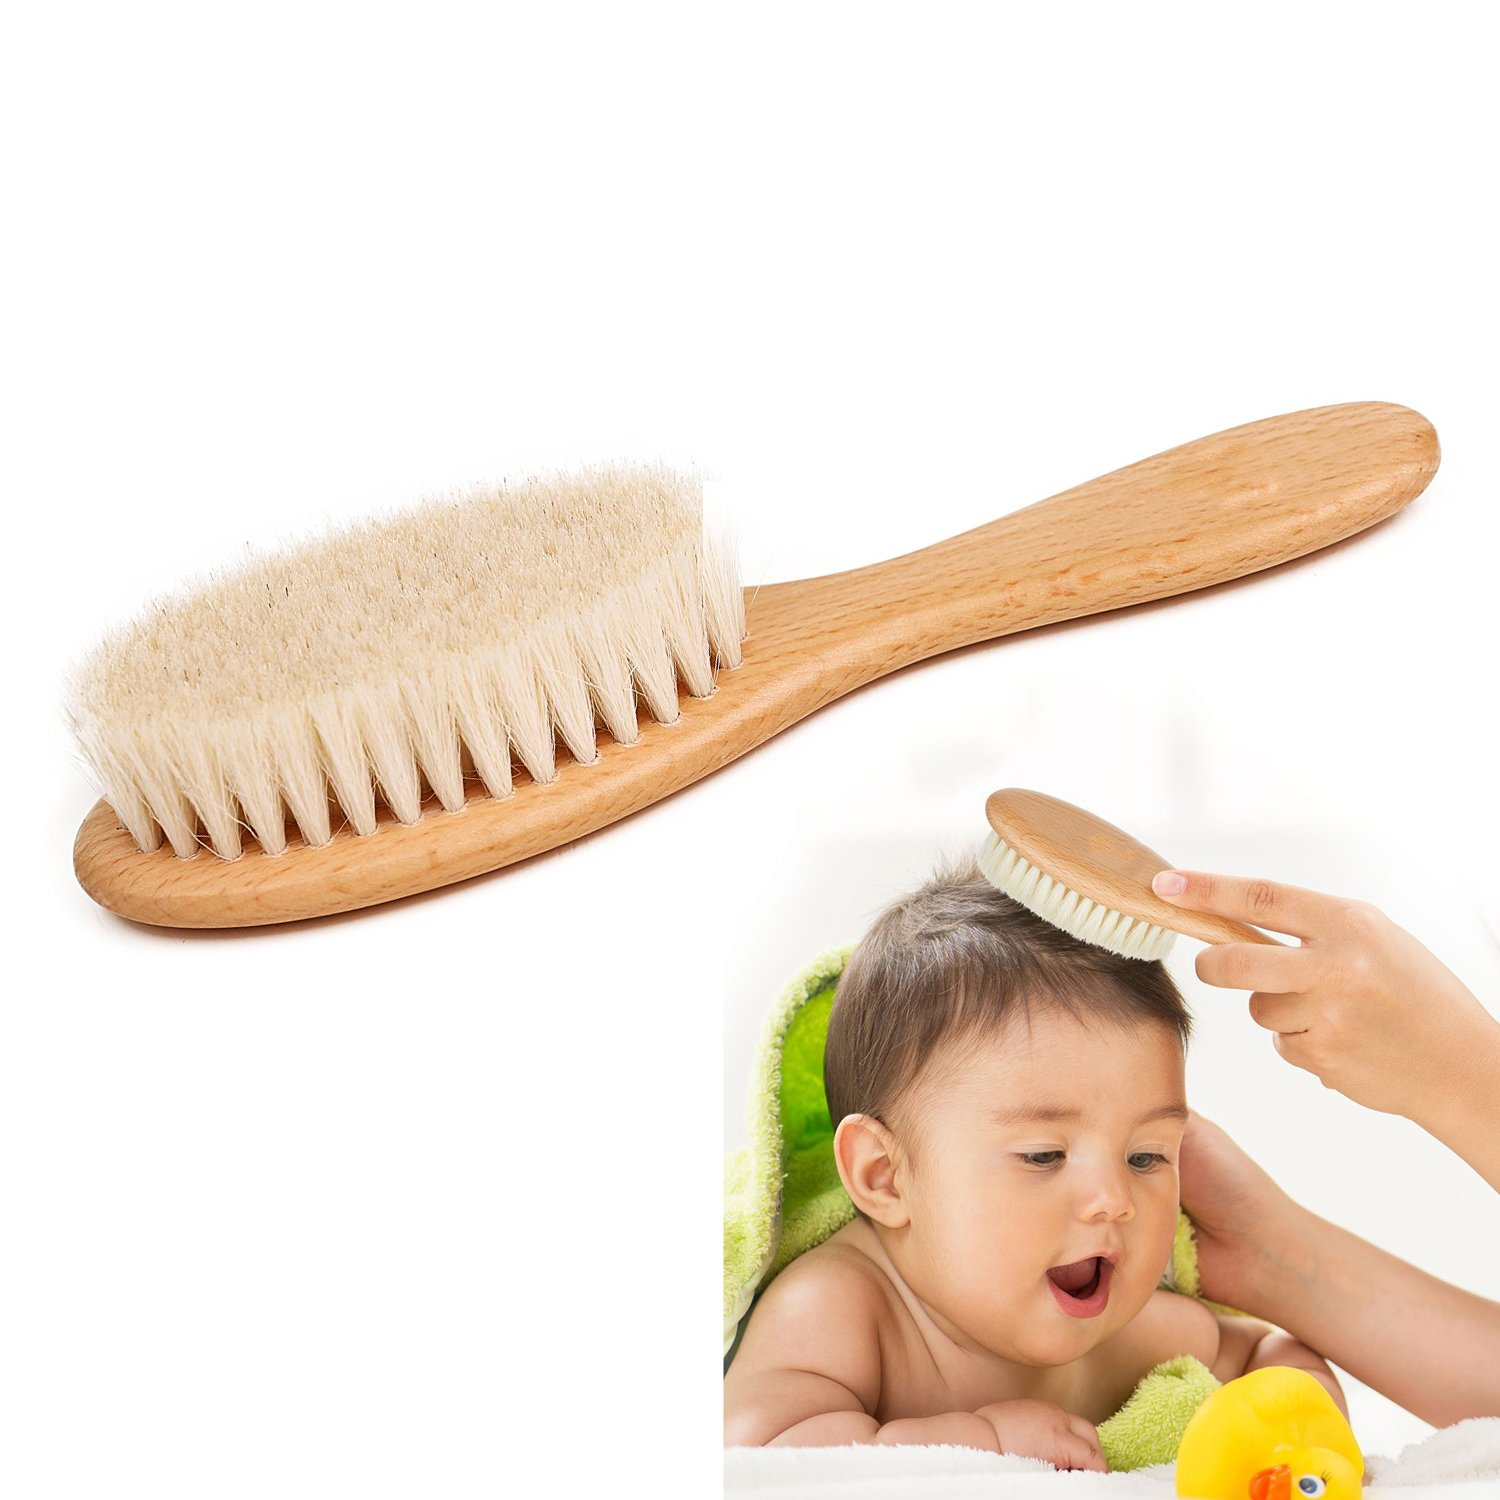 Baby Wooden Hair Brush Soft Goat Bristles Premium Wooden Baby Brush for Cradle Cap, Boys & Girls, Toddler & Newborn, Baby Shower Gift & Registry (wooden) Ouchver